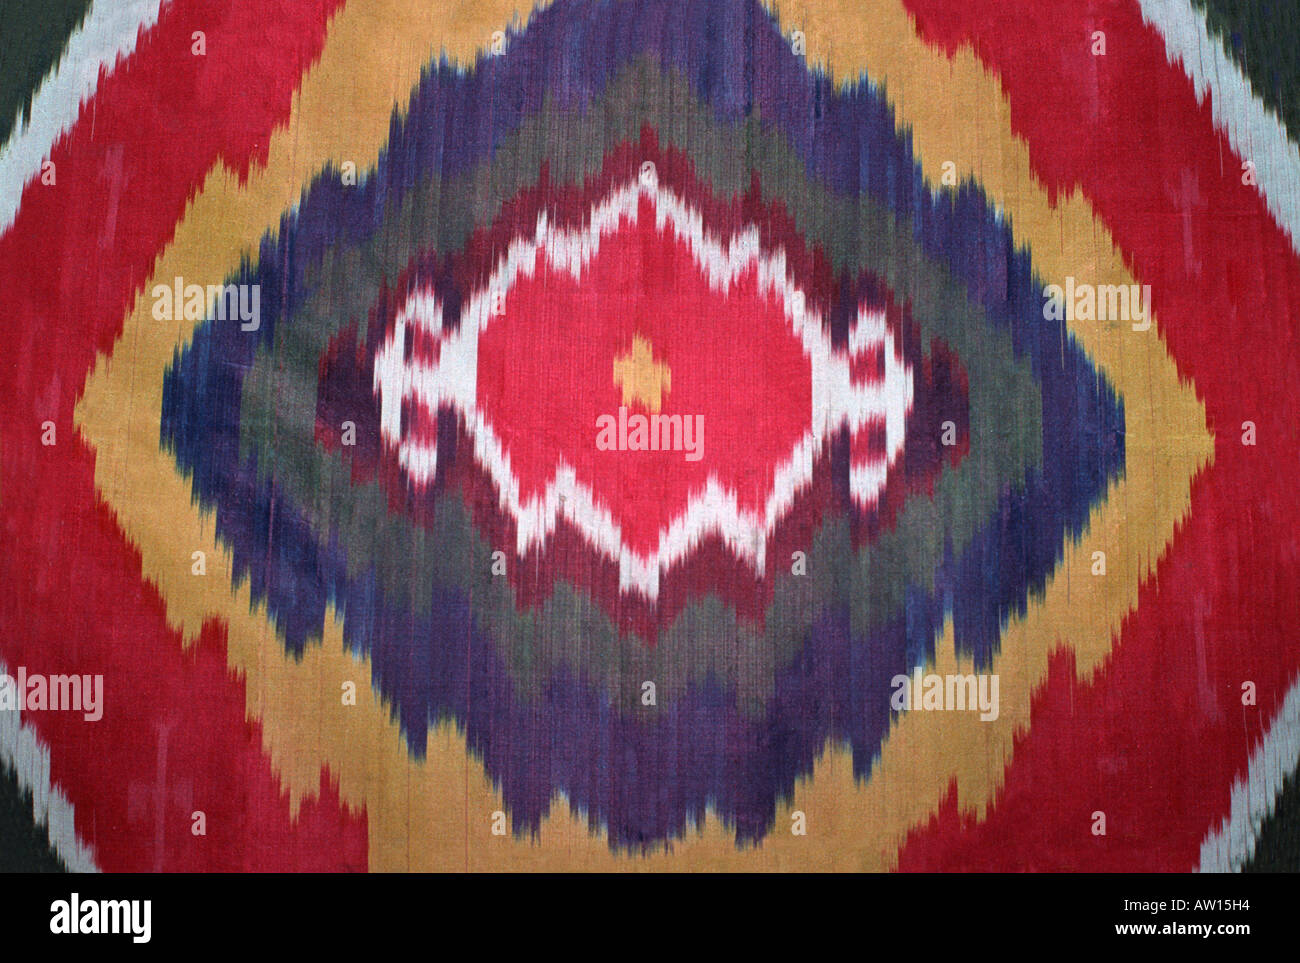 Uzbekistan Ikat patterned silk fabric Detail of Uzbek silk coat Ikat coats are an important textile tradition in Central Asia - Stock Image